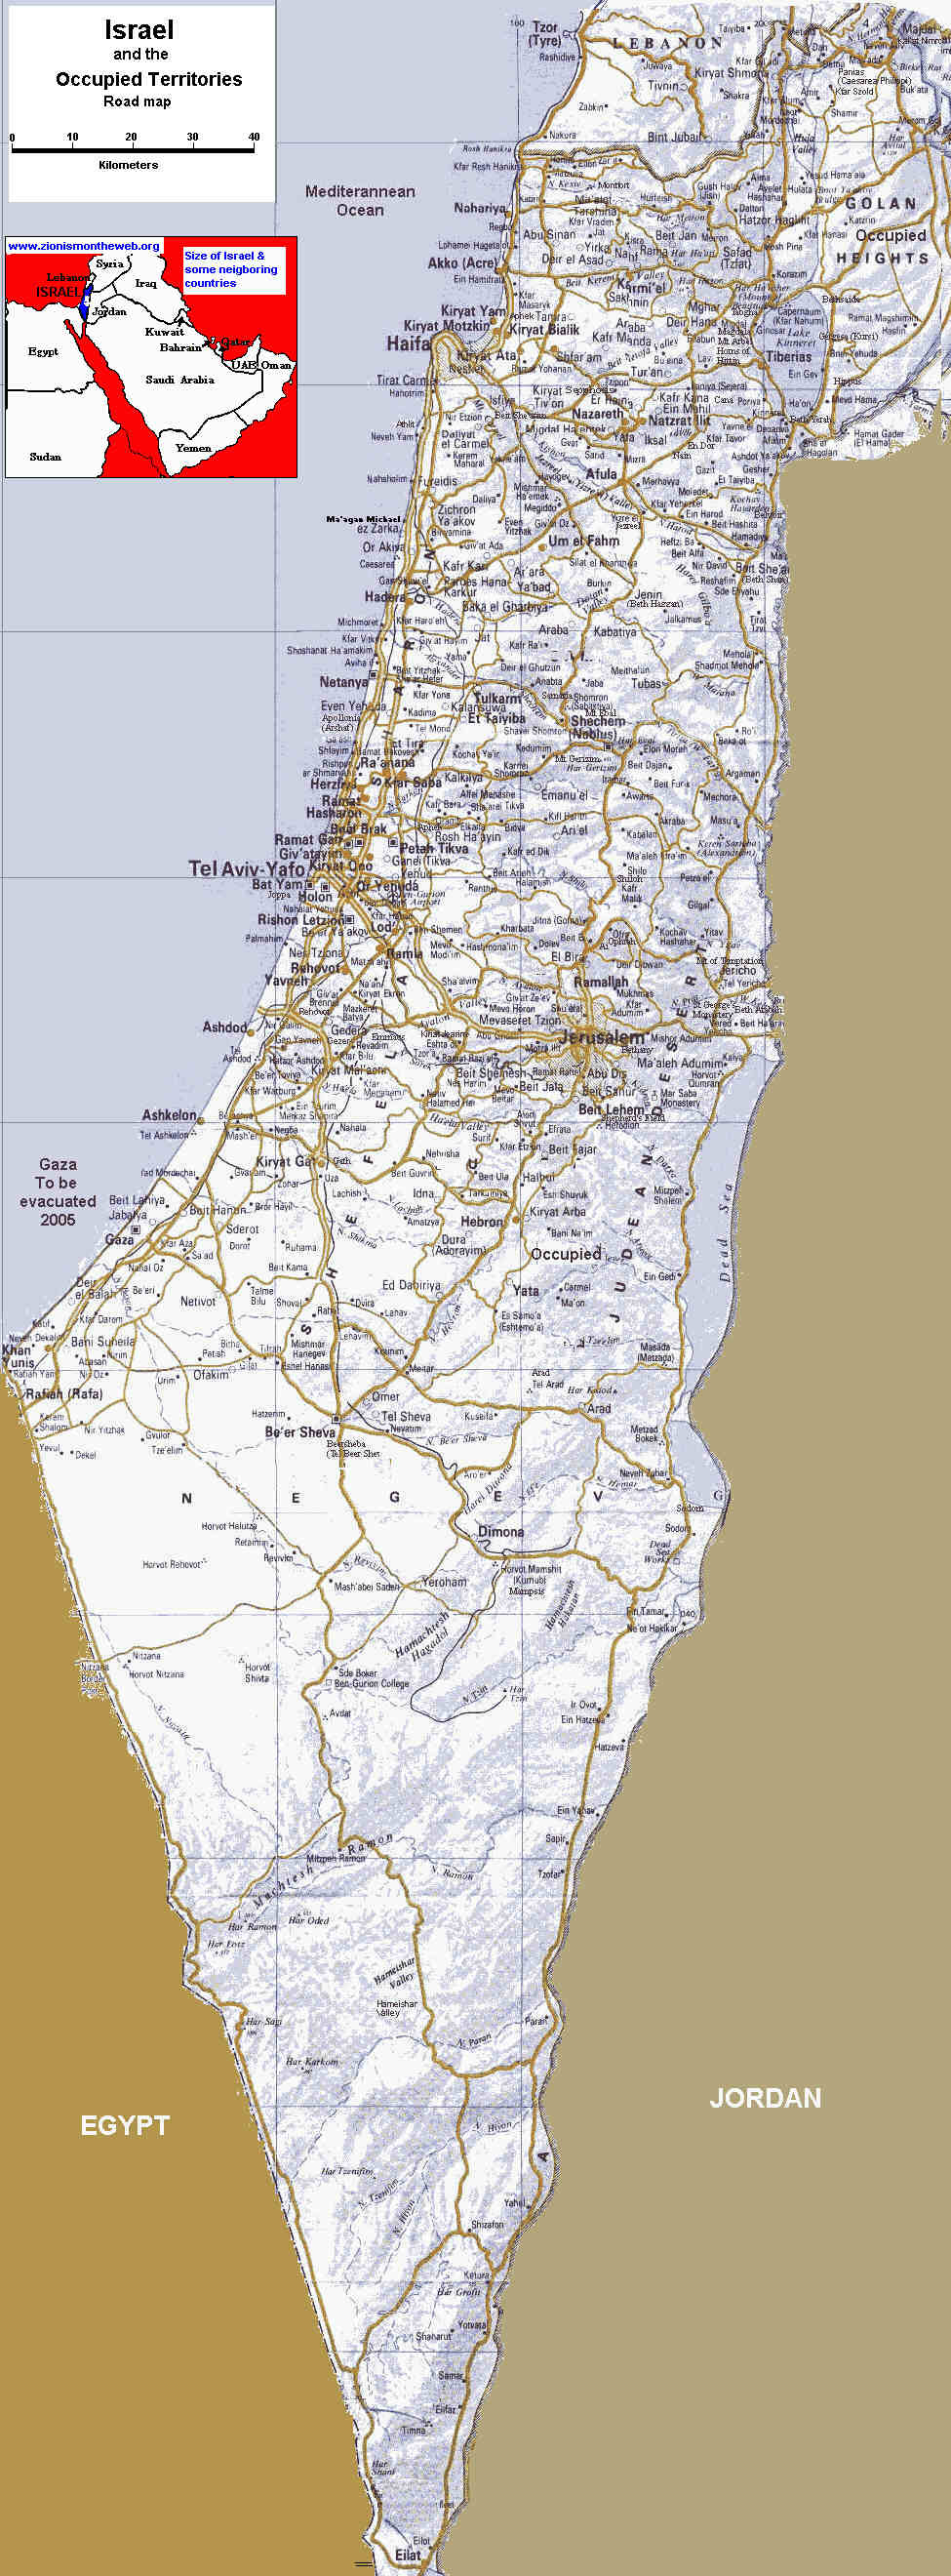 detailed roadmap of israel and occupied territories palestinian and syrian golan heights